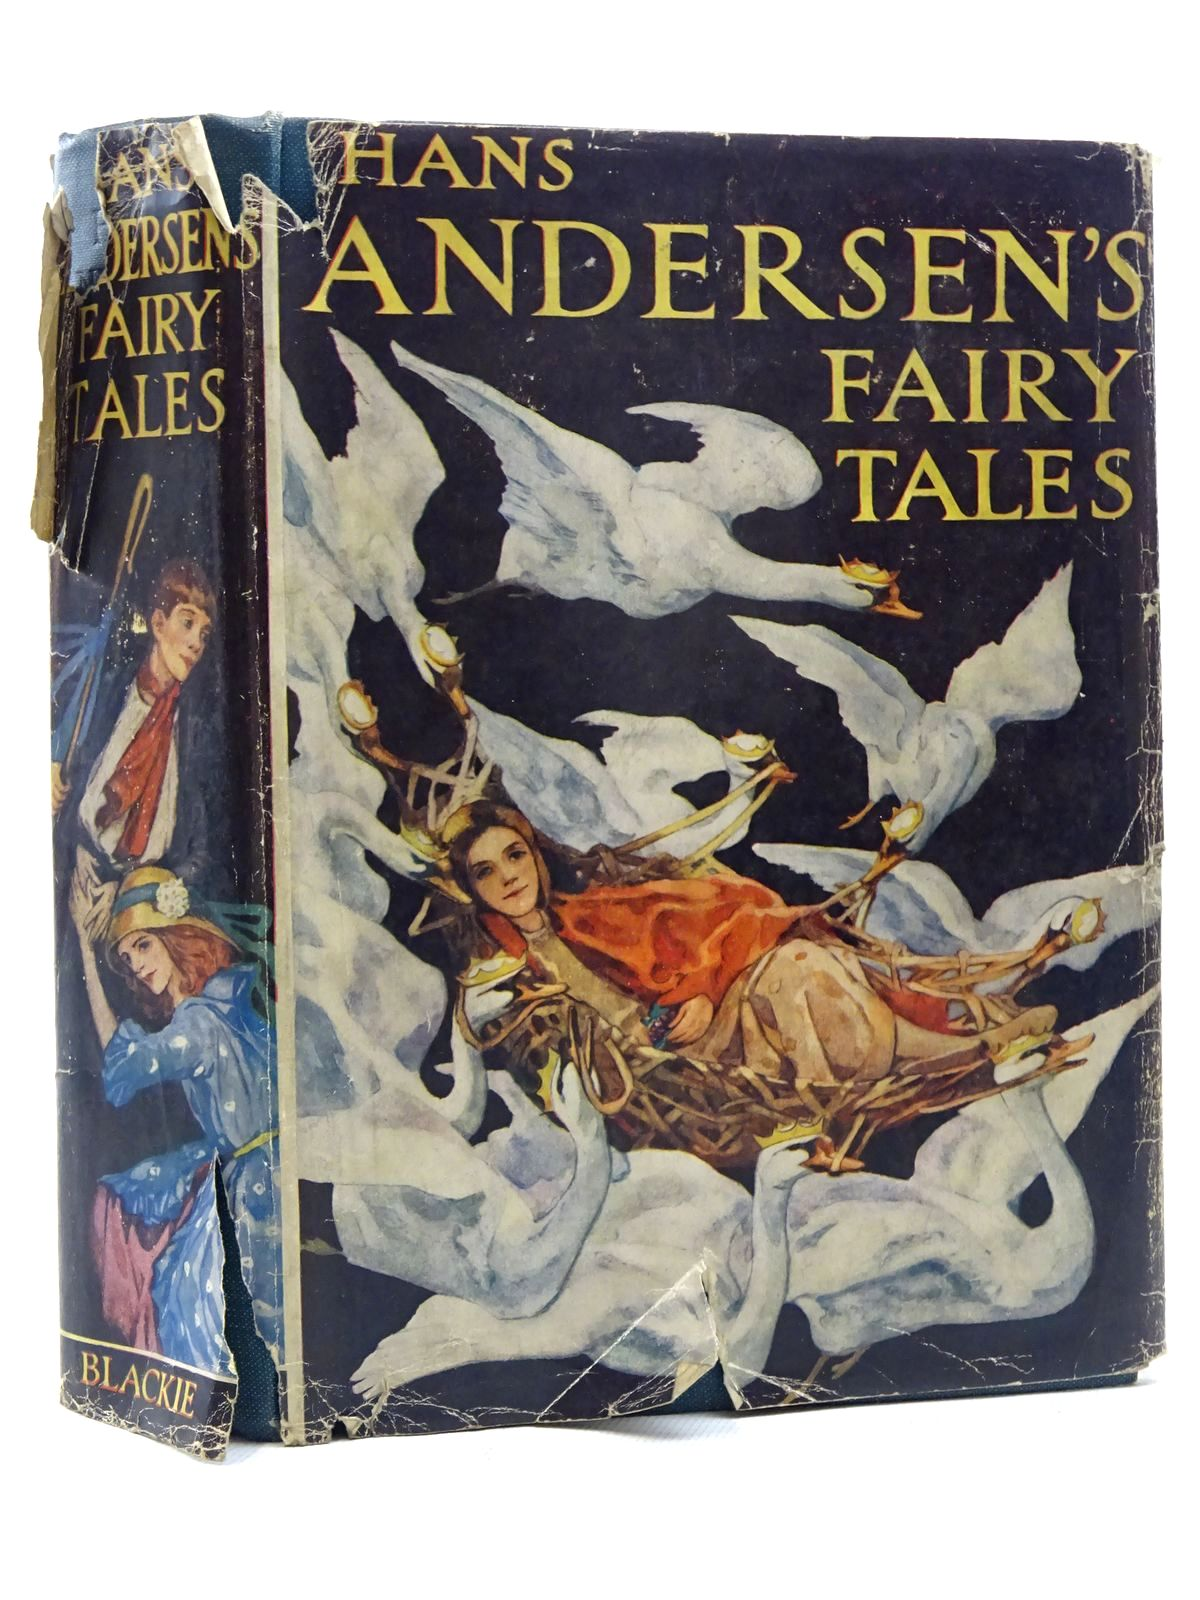 Photo of HANS ANDERSEN'S FAIRY TALES written by Andersen, Hans Christian illustrated by Stratton, Helen published by Blackie & Son Ltd. (STOCK CODE: 2125164)  for sale by Stella & Rose's Books